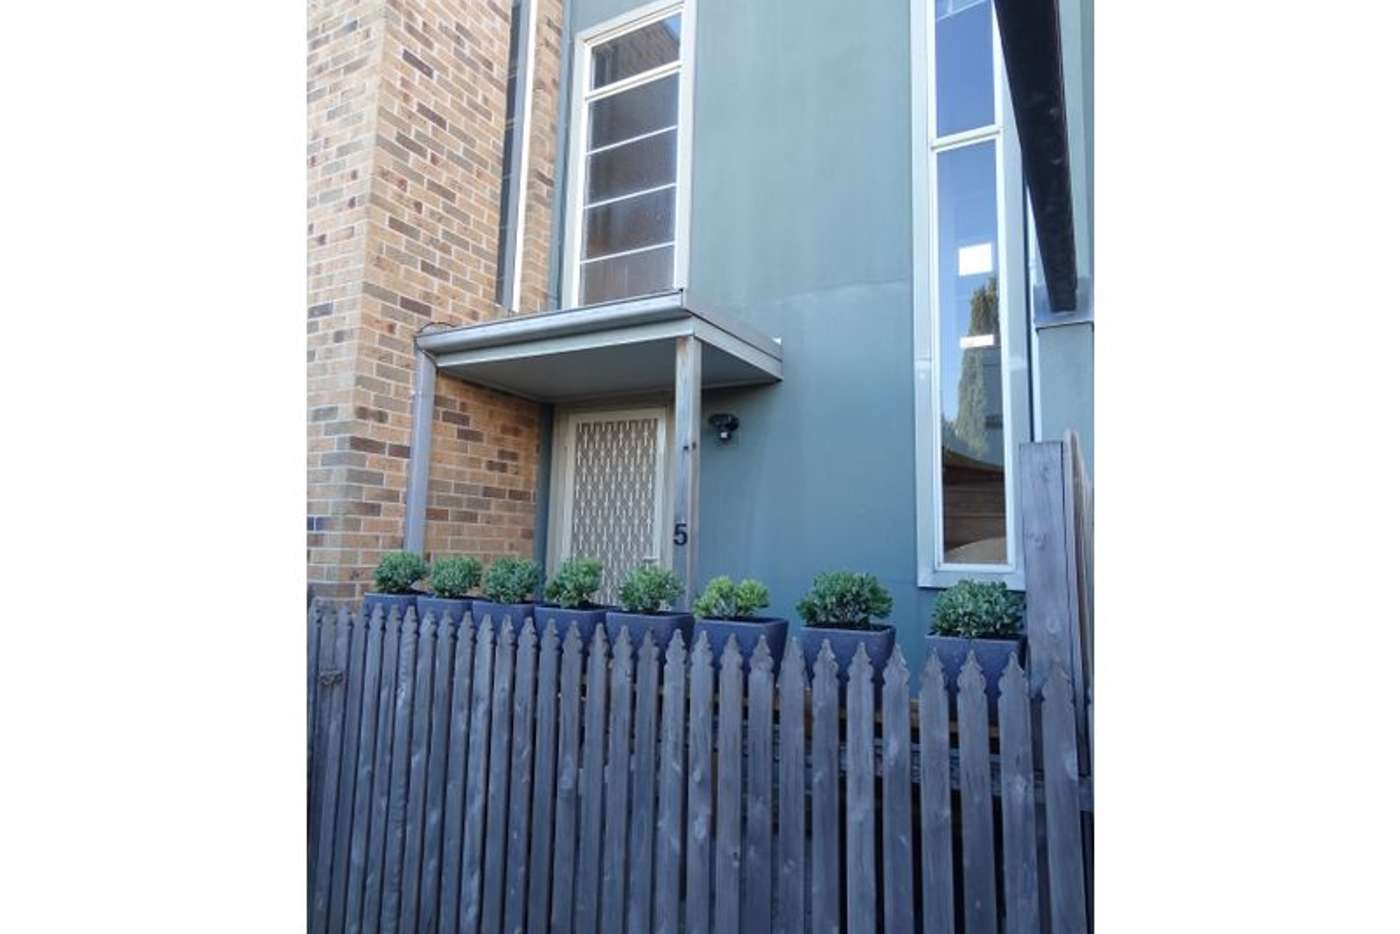 Main view of Homely townhouse listing, 5/80 Tinning Street, Brunswick VIC 3056